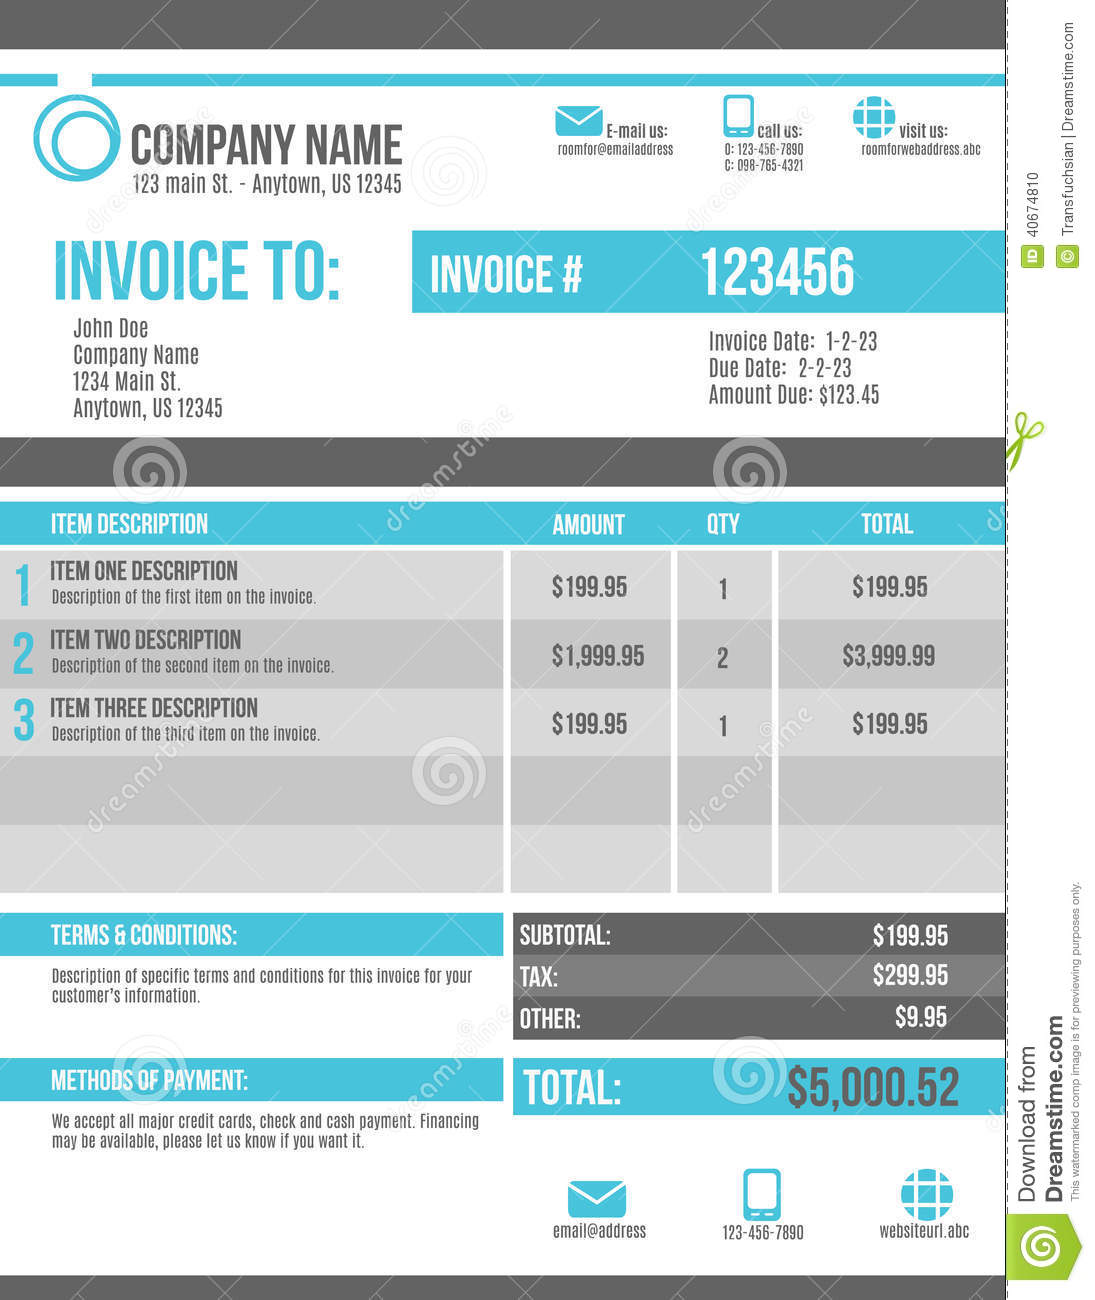 Customizable Invoice Template Design Stock Vector Illustration Of - Customizable invoice